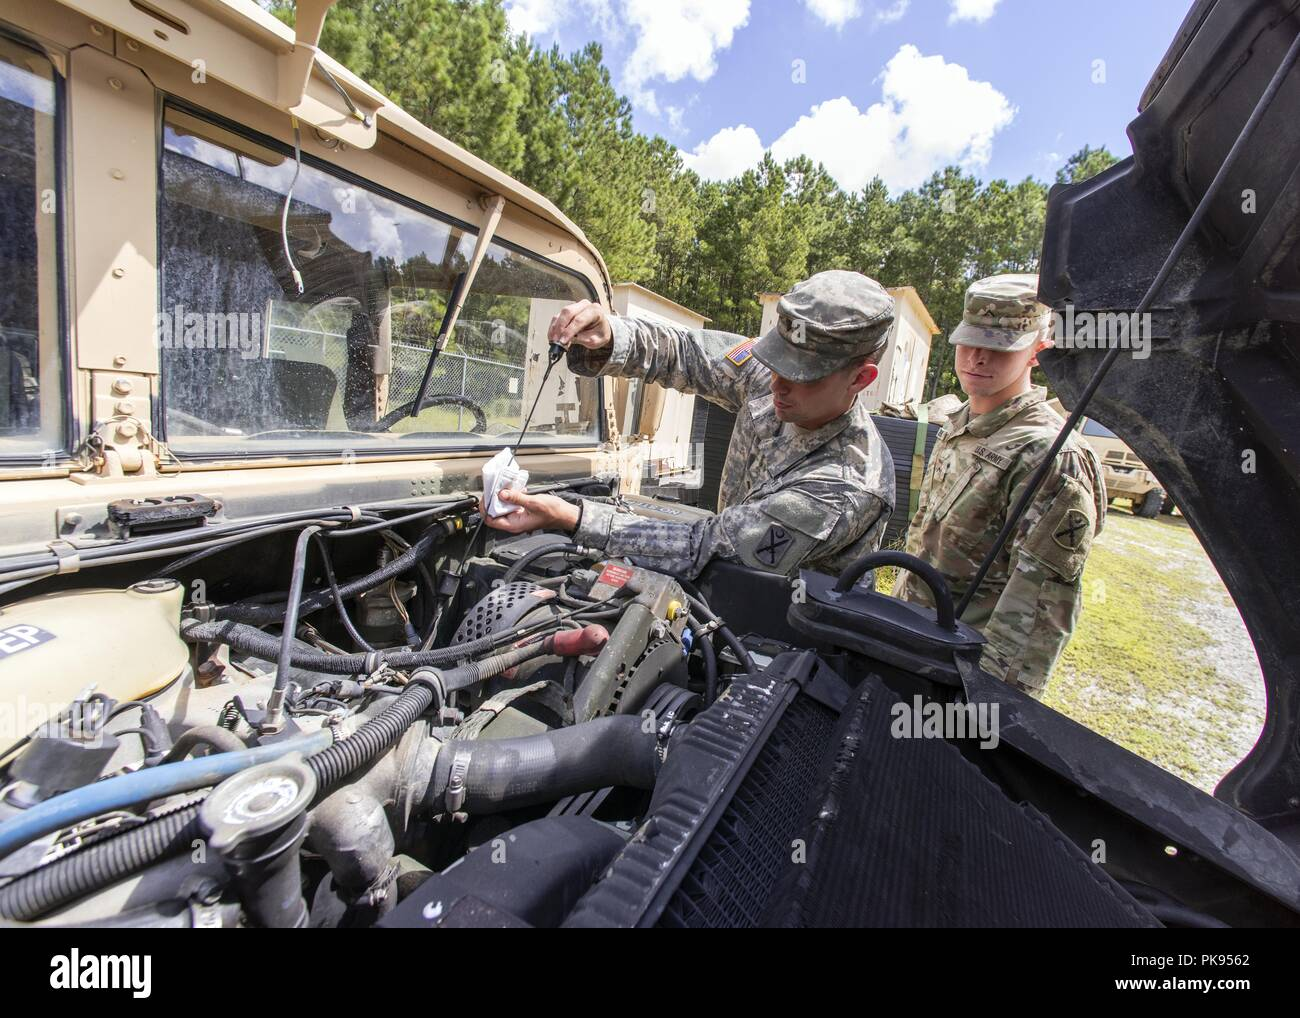 South Carolina National Guard Soldiers from Bravo Company, 1-118 Infantry, preform preventative maintenance checks to unit vehicles in preparation to support partnered civilian agencies and safeguard the citizens of the state in advance of Hurricane Florence, September 10, 2018, September 10, 2018. Approximately 1600 Soldiers and Airmen have been mobilized to prepare, respond and participate in recovery efforts as forecasters project Hurricane Florence will increase in strength with potential to be a Category 4 storm and a projected path to make landfall near the Carolinas and east coast. (U.S Stock Photo